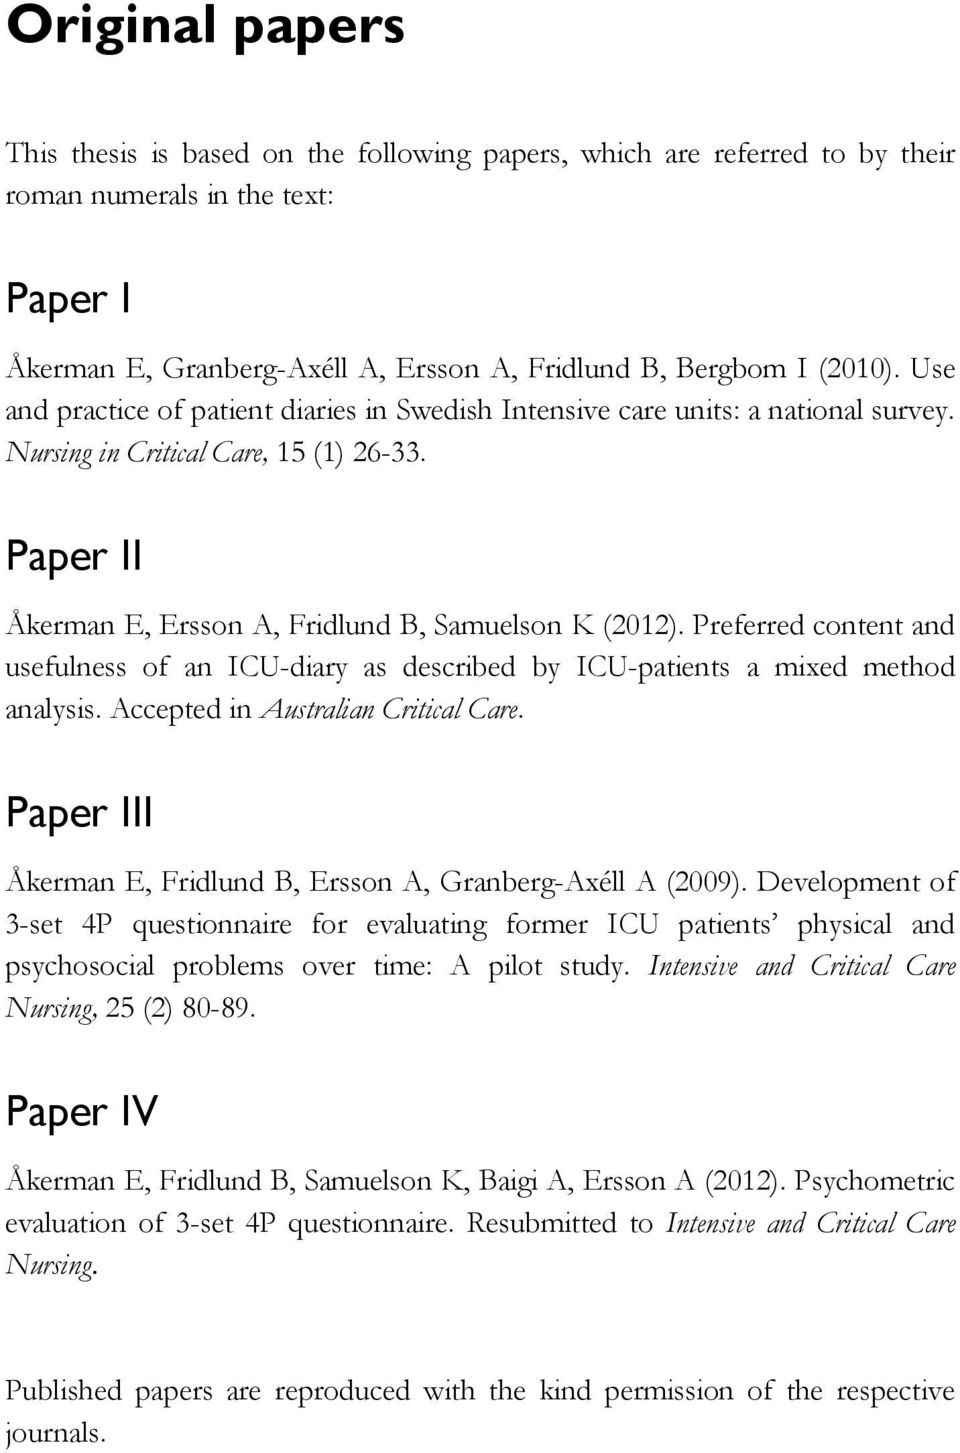 Preferred content and usefulness of an ICU-diary as described by ICU-patients a mixed method analysis. Accepted in Australian Critical Care.